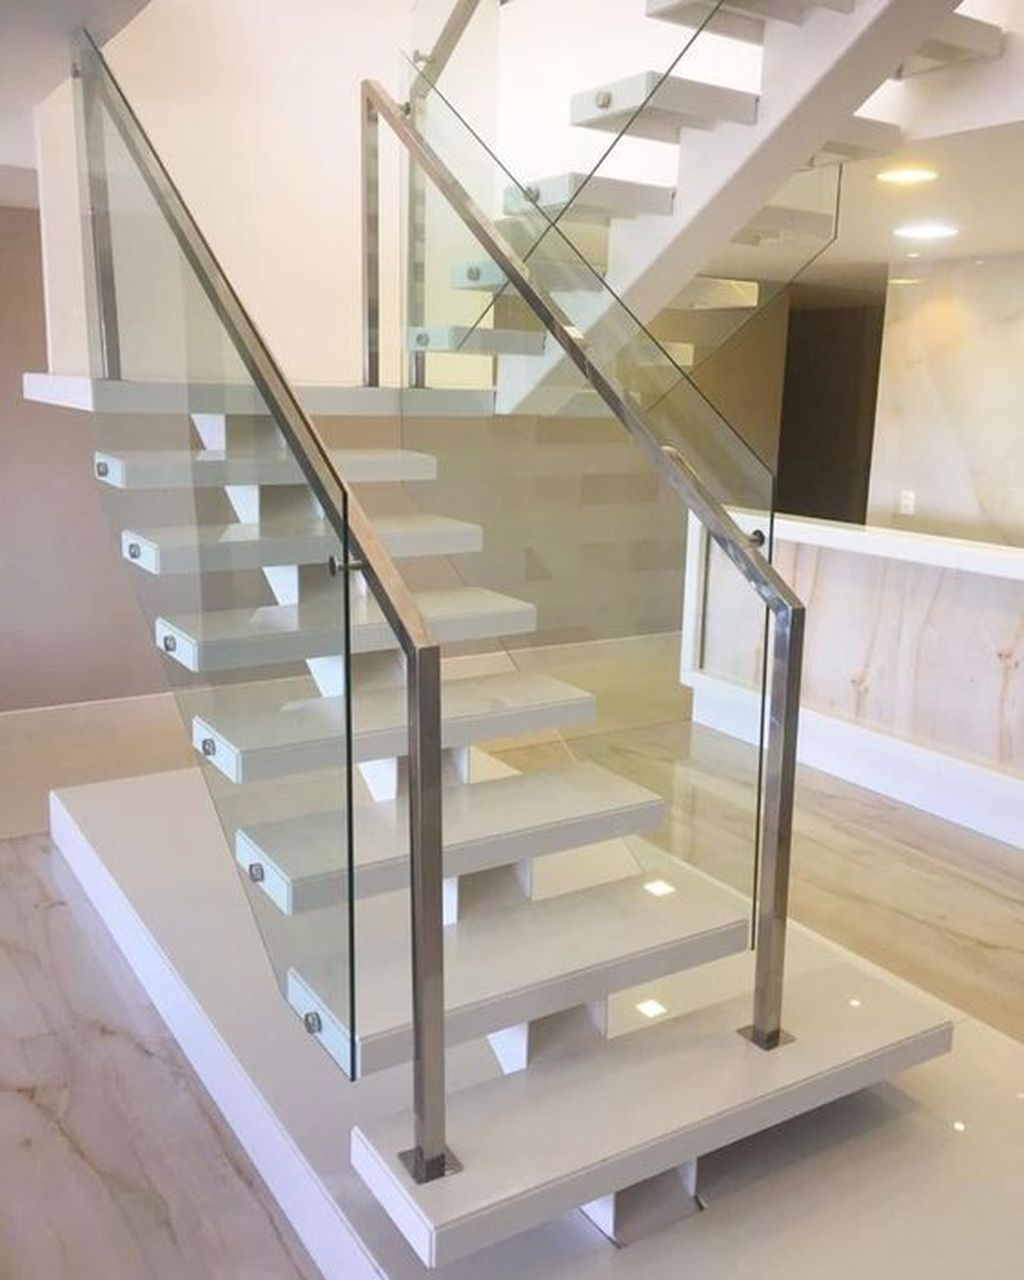 Awesome Modern Glass Railings Design Ideas For Stairs 19